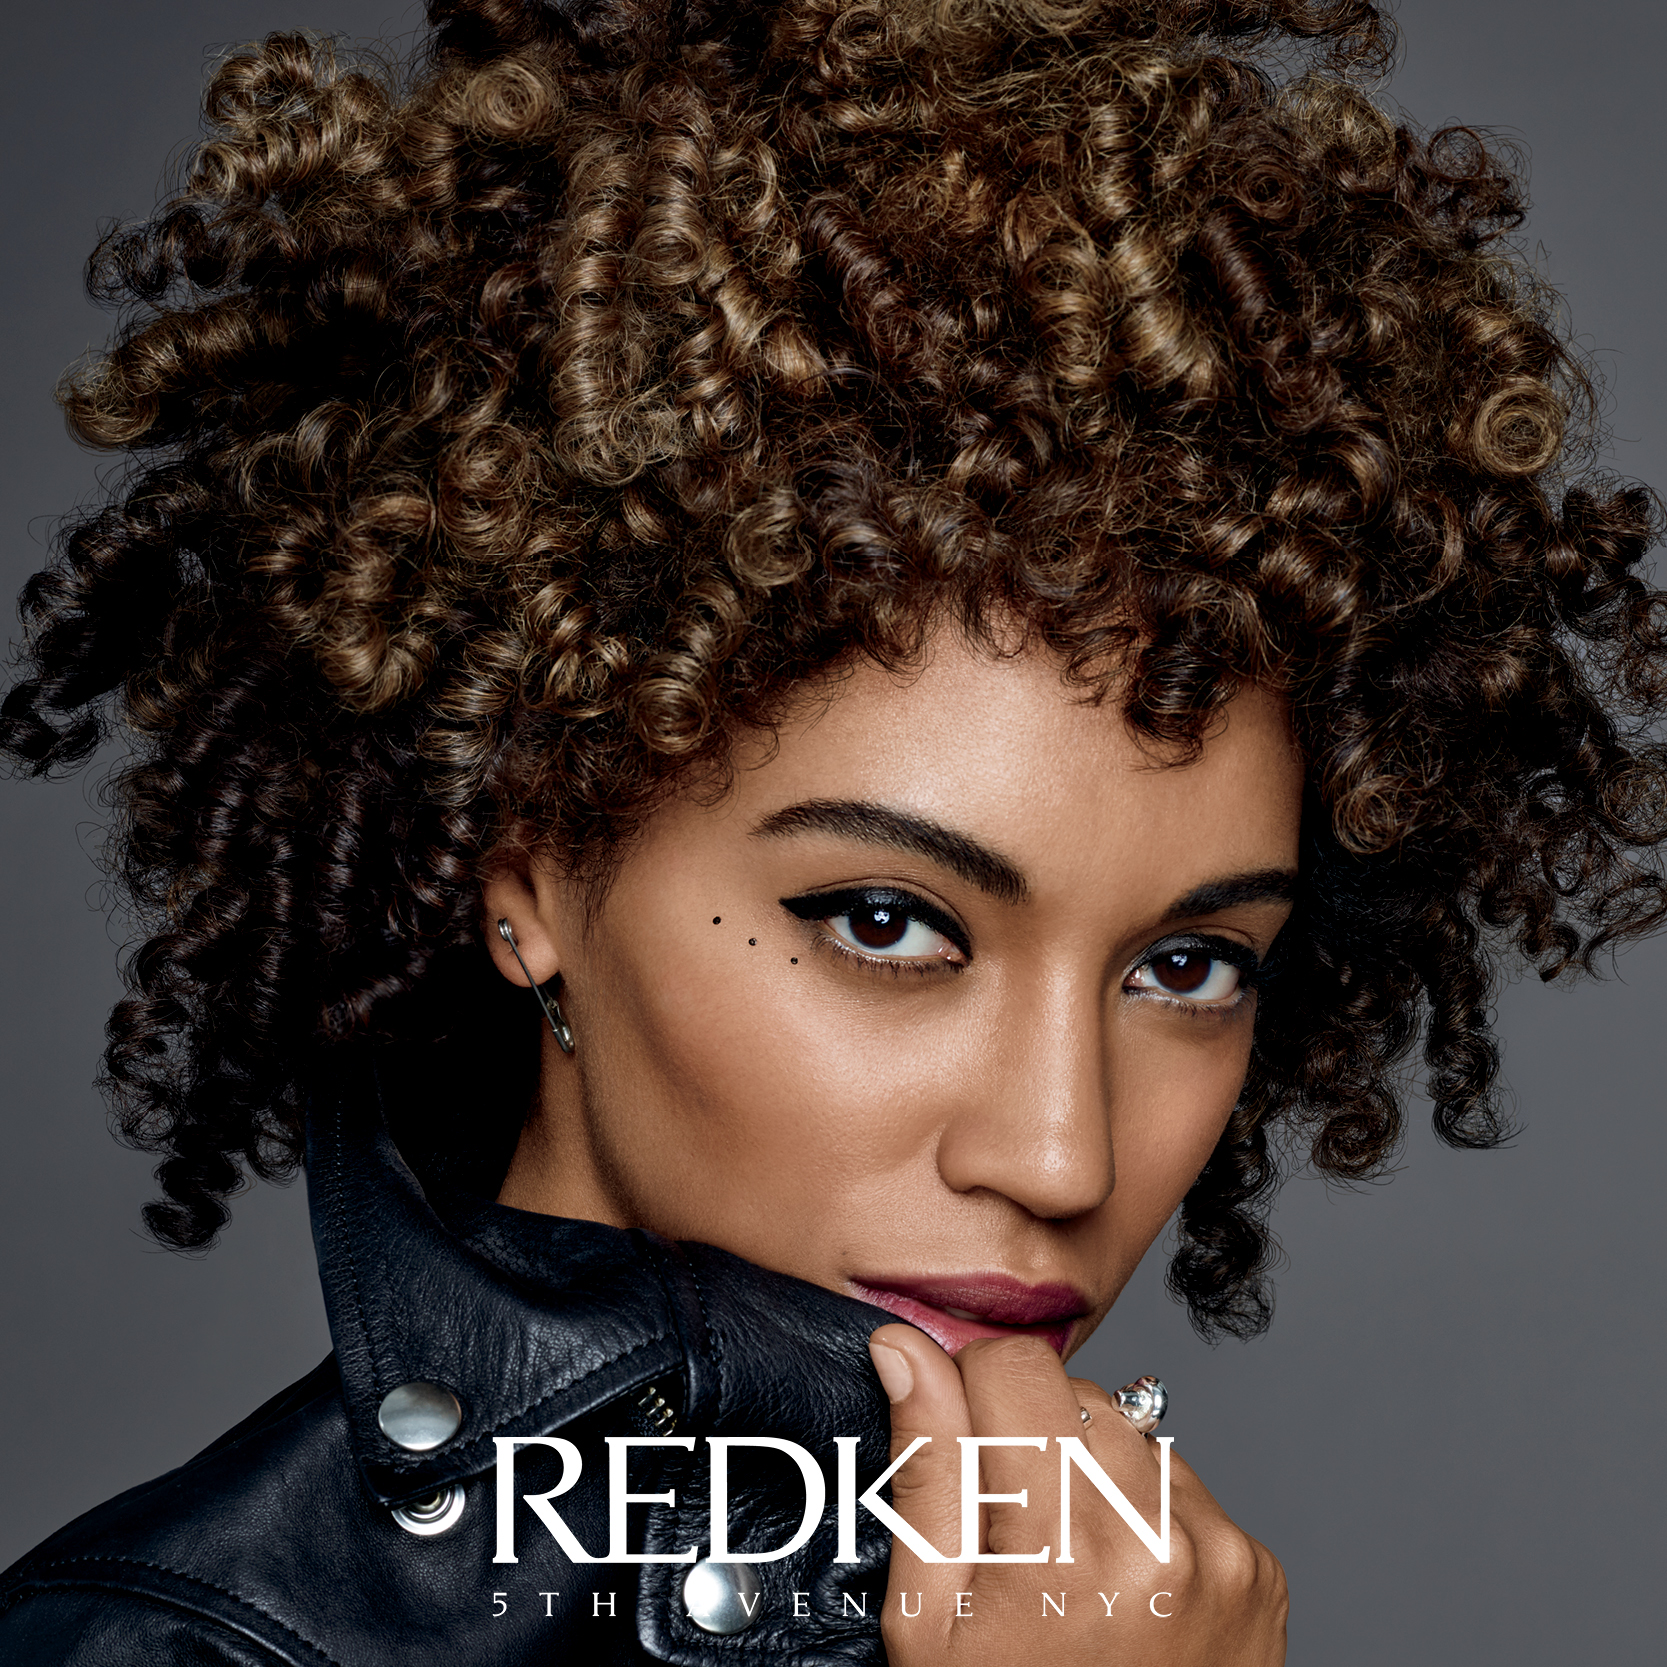 For a serious step up in your hair's shine and natural luster, Redken's is your color line!